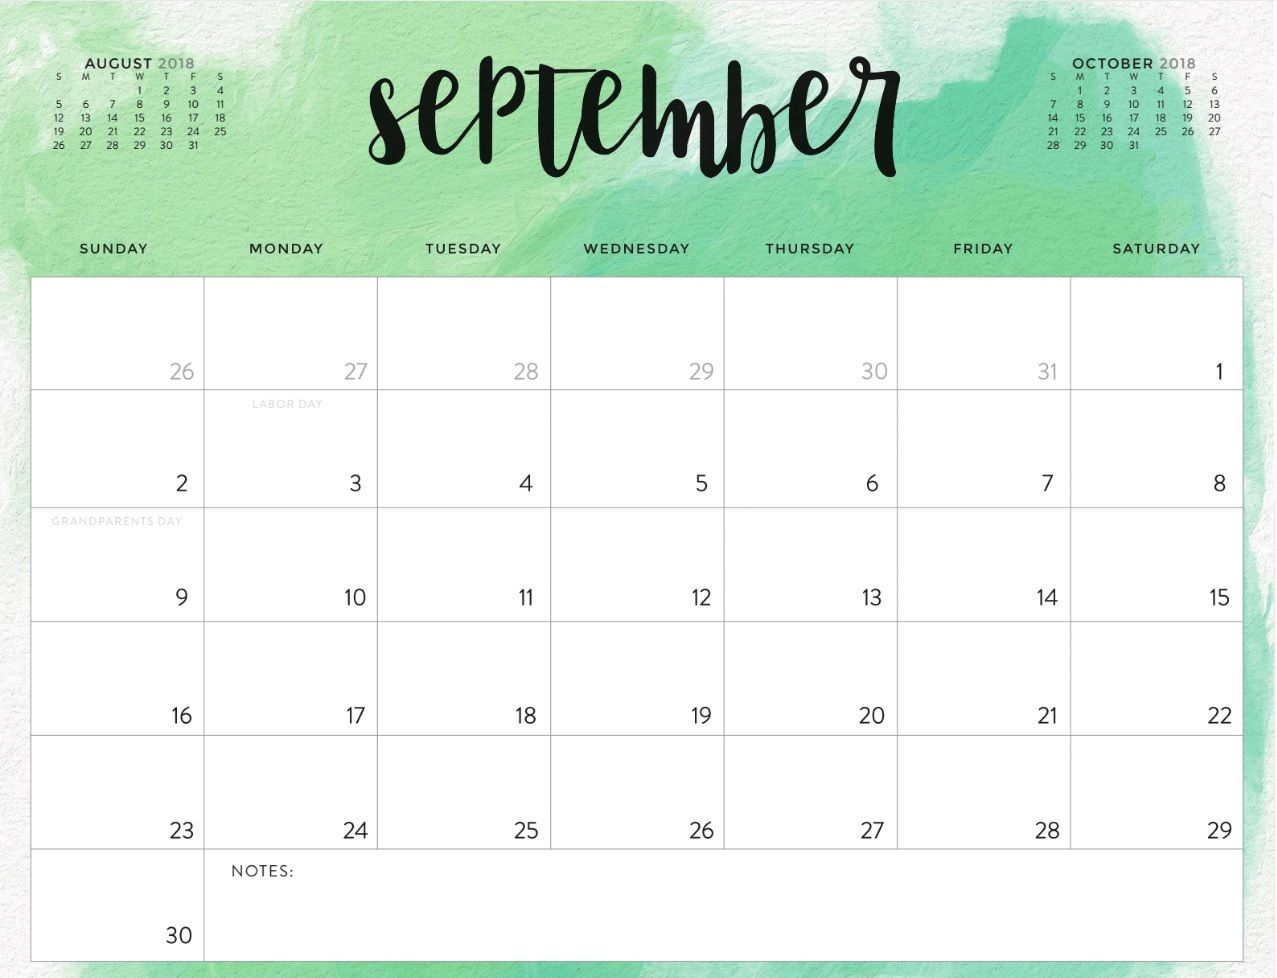 photo relating to September Printable Calendar identified as September 2018 Calendar Printable Water-resistant Printable